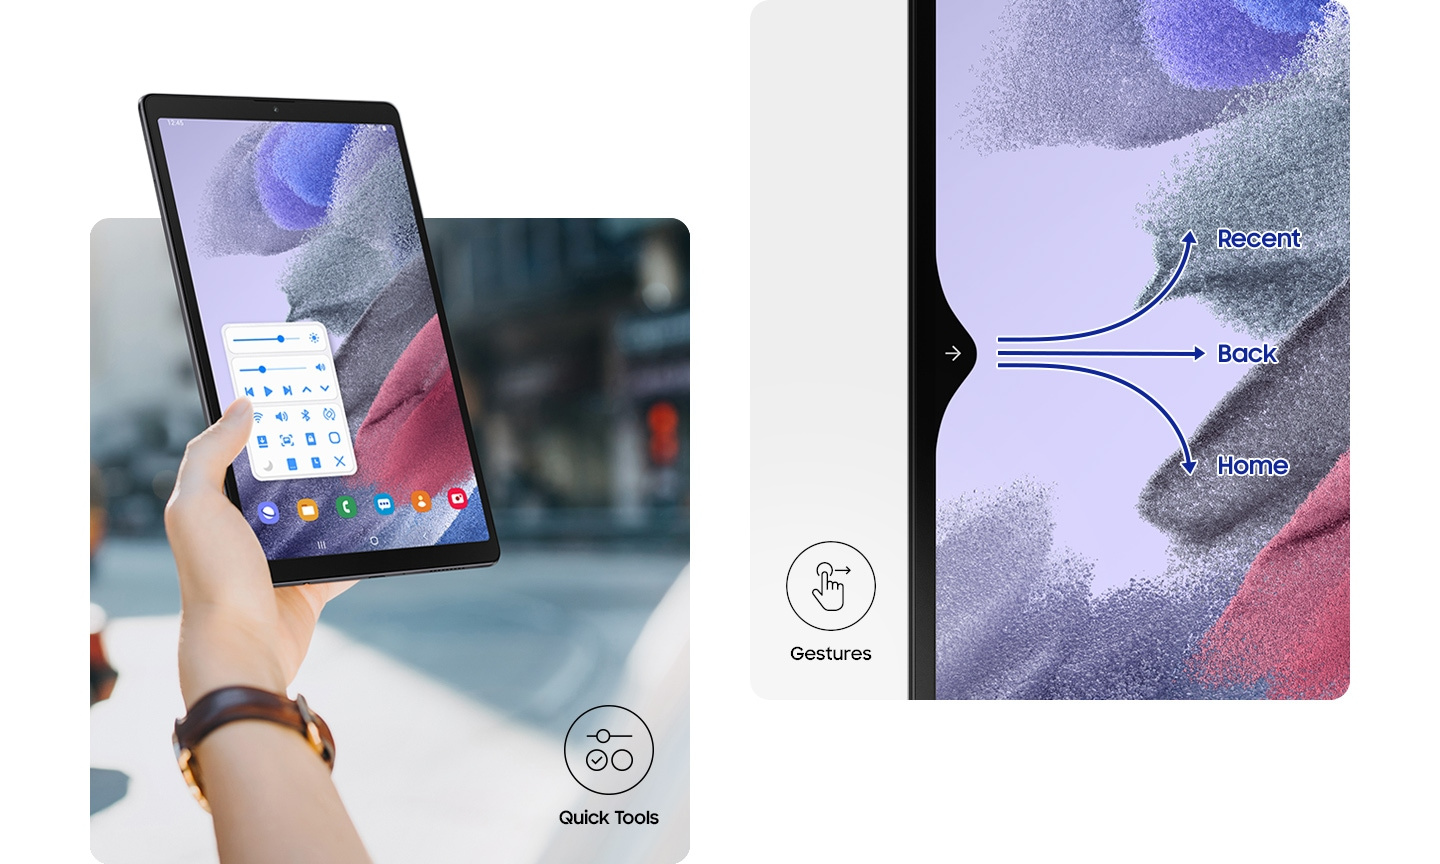 A person holding Galaxy Tab A7 Lite in their left hand. The Quick Tools menu is onscreen and they can easily adjust settings with their thumb. The Quick Tools icon is seen too. Plus a close-up of the Galaxy Tab A7 Lite screen with arrows showing gestures. Swipe to the right and up for Recent, swipe straight right for Back, and swipe to the right and down for the Home screen. The Gestures icon is seen too.